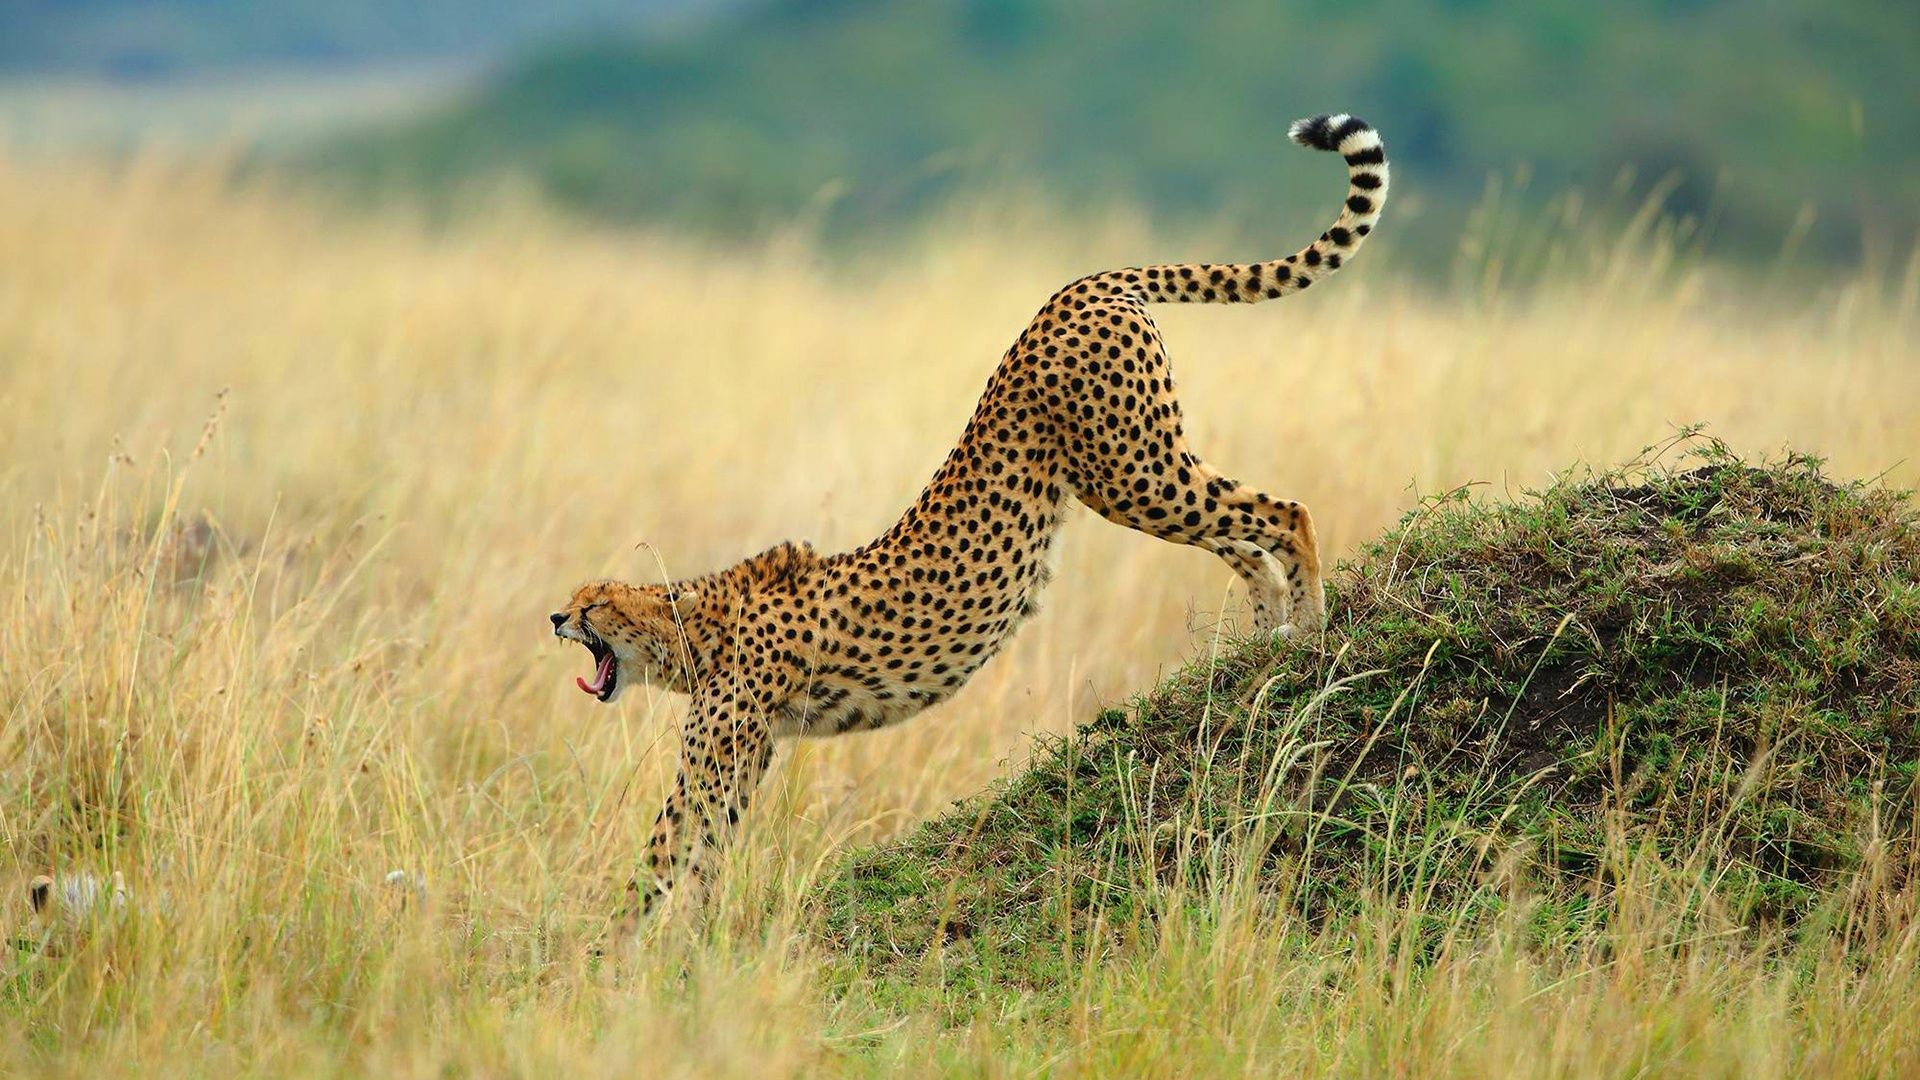 Leopard sports night sunset savannah africa hd wallpaper - National geographic wild wallpapers ...